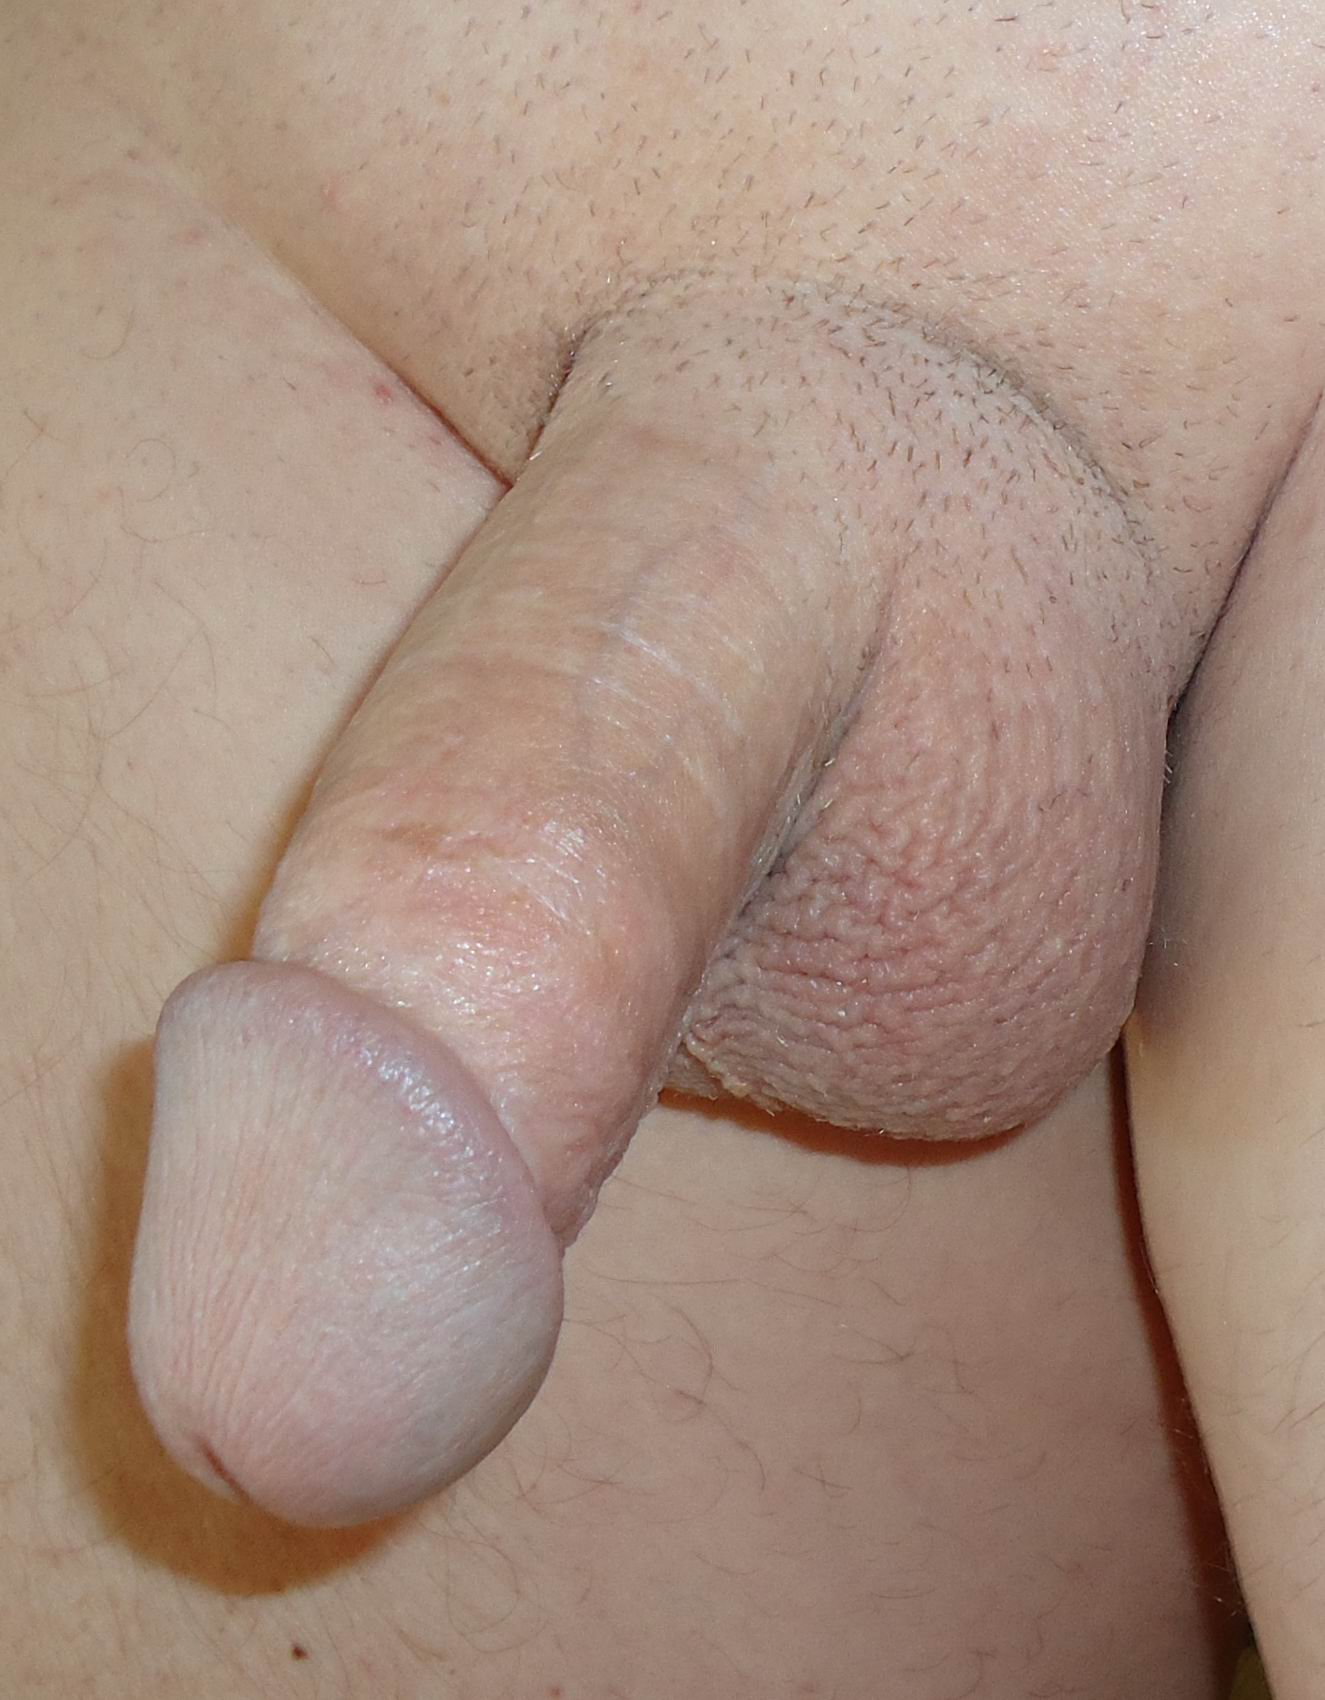 caltrate cock cunt slut tit